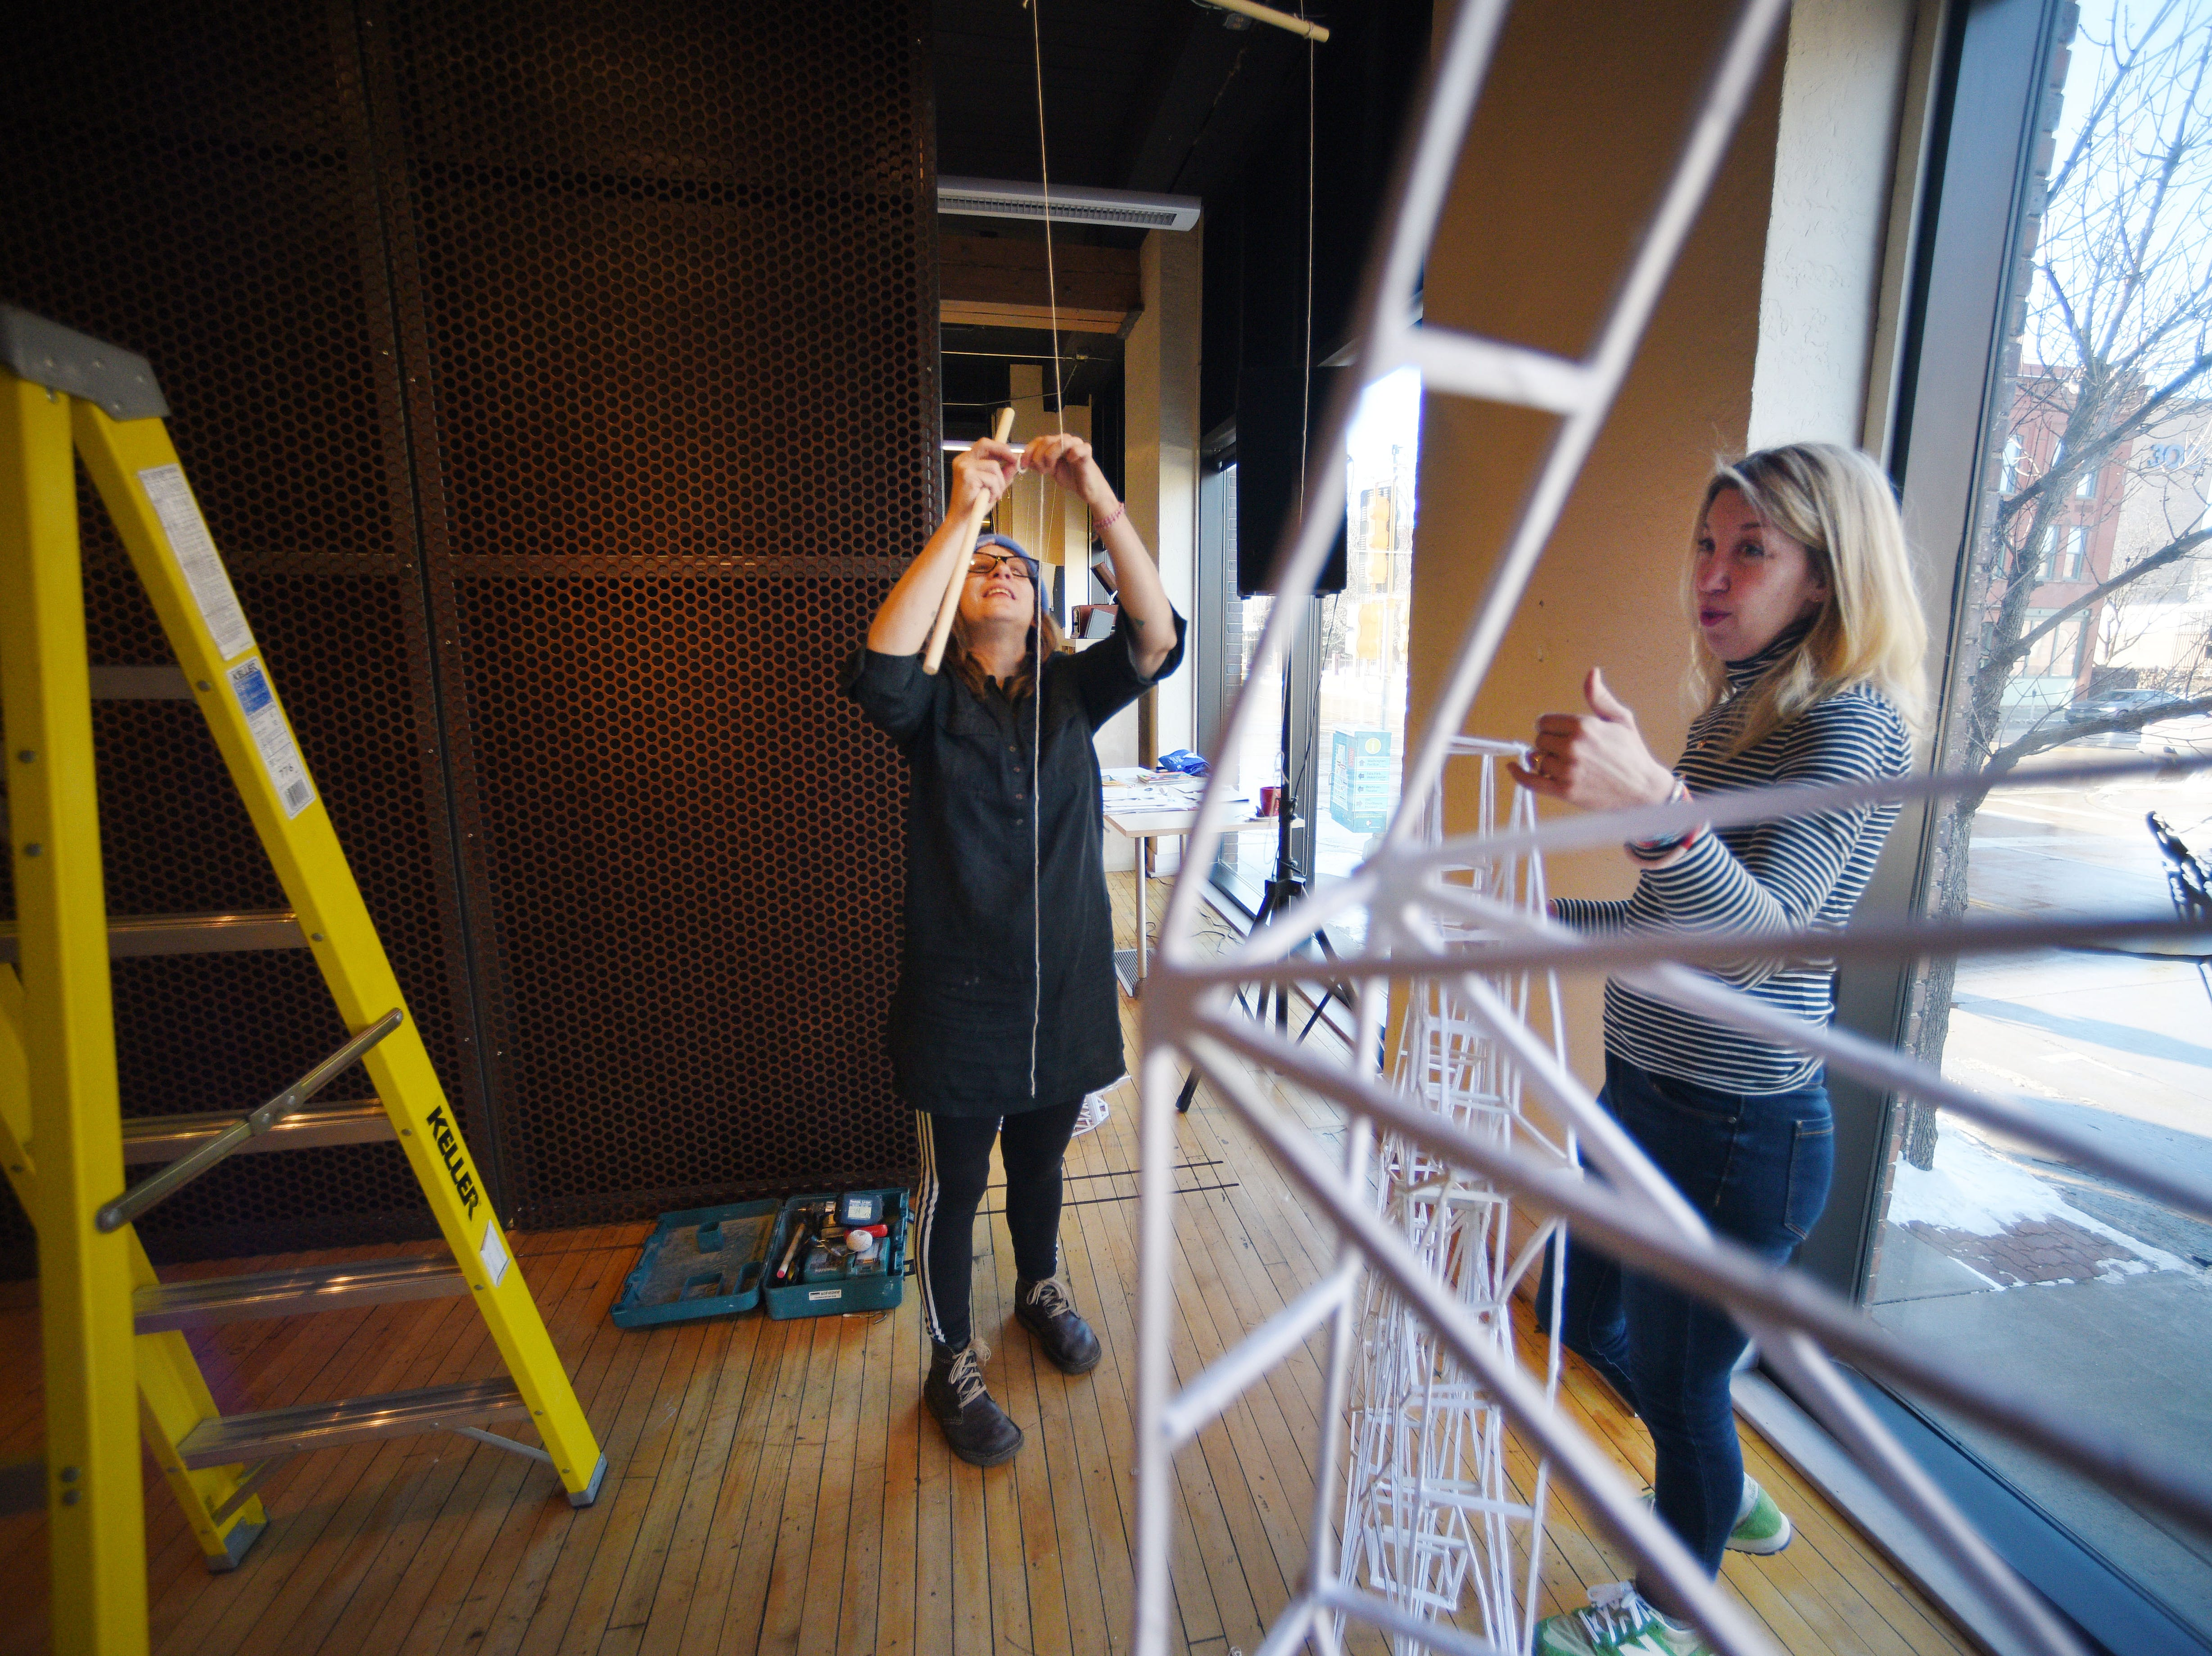 Working artist Amy Fill and gallery director Liz Heeren set up art installations for the upcoming Ipso gallery, Manualtronic, Saturday, Feb. 2, at Fresh Produce. The gallery is open Friday, Feb. 8, from 6 to 8 p.m. and will be up until the last Friday of March.